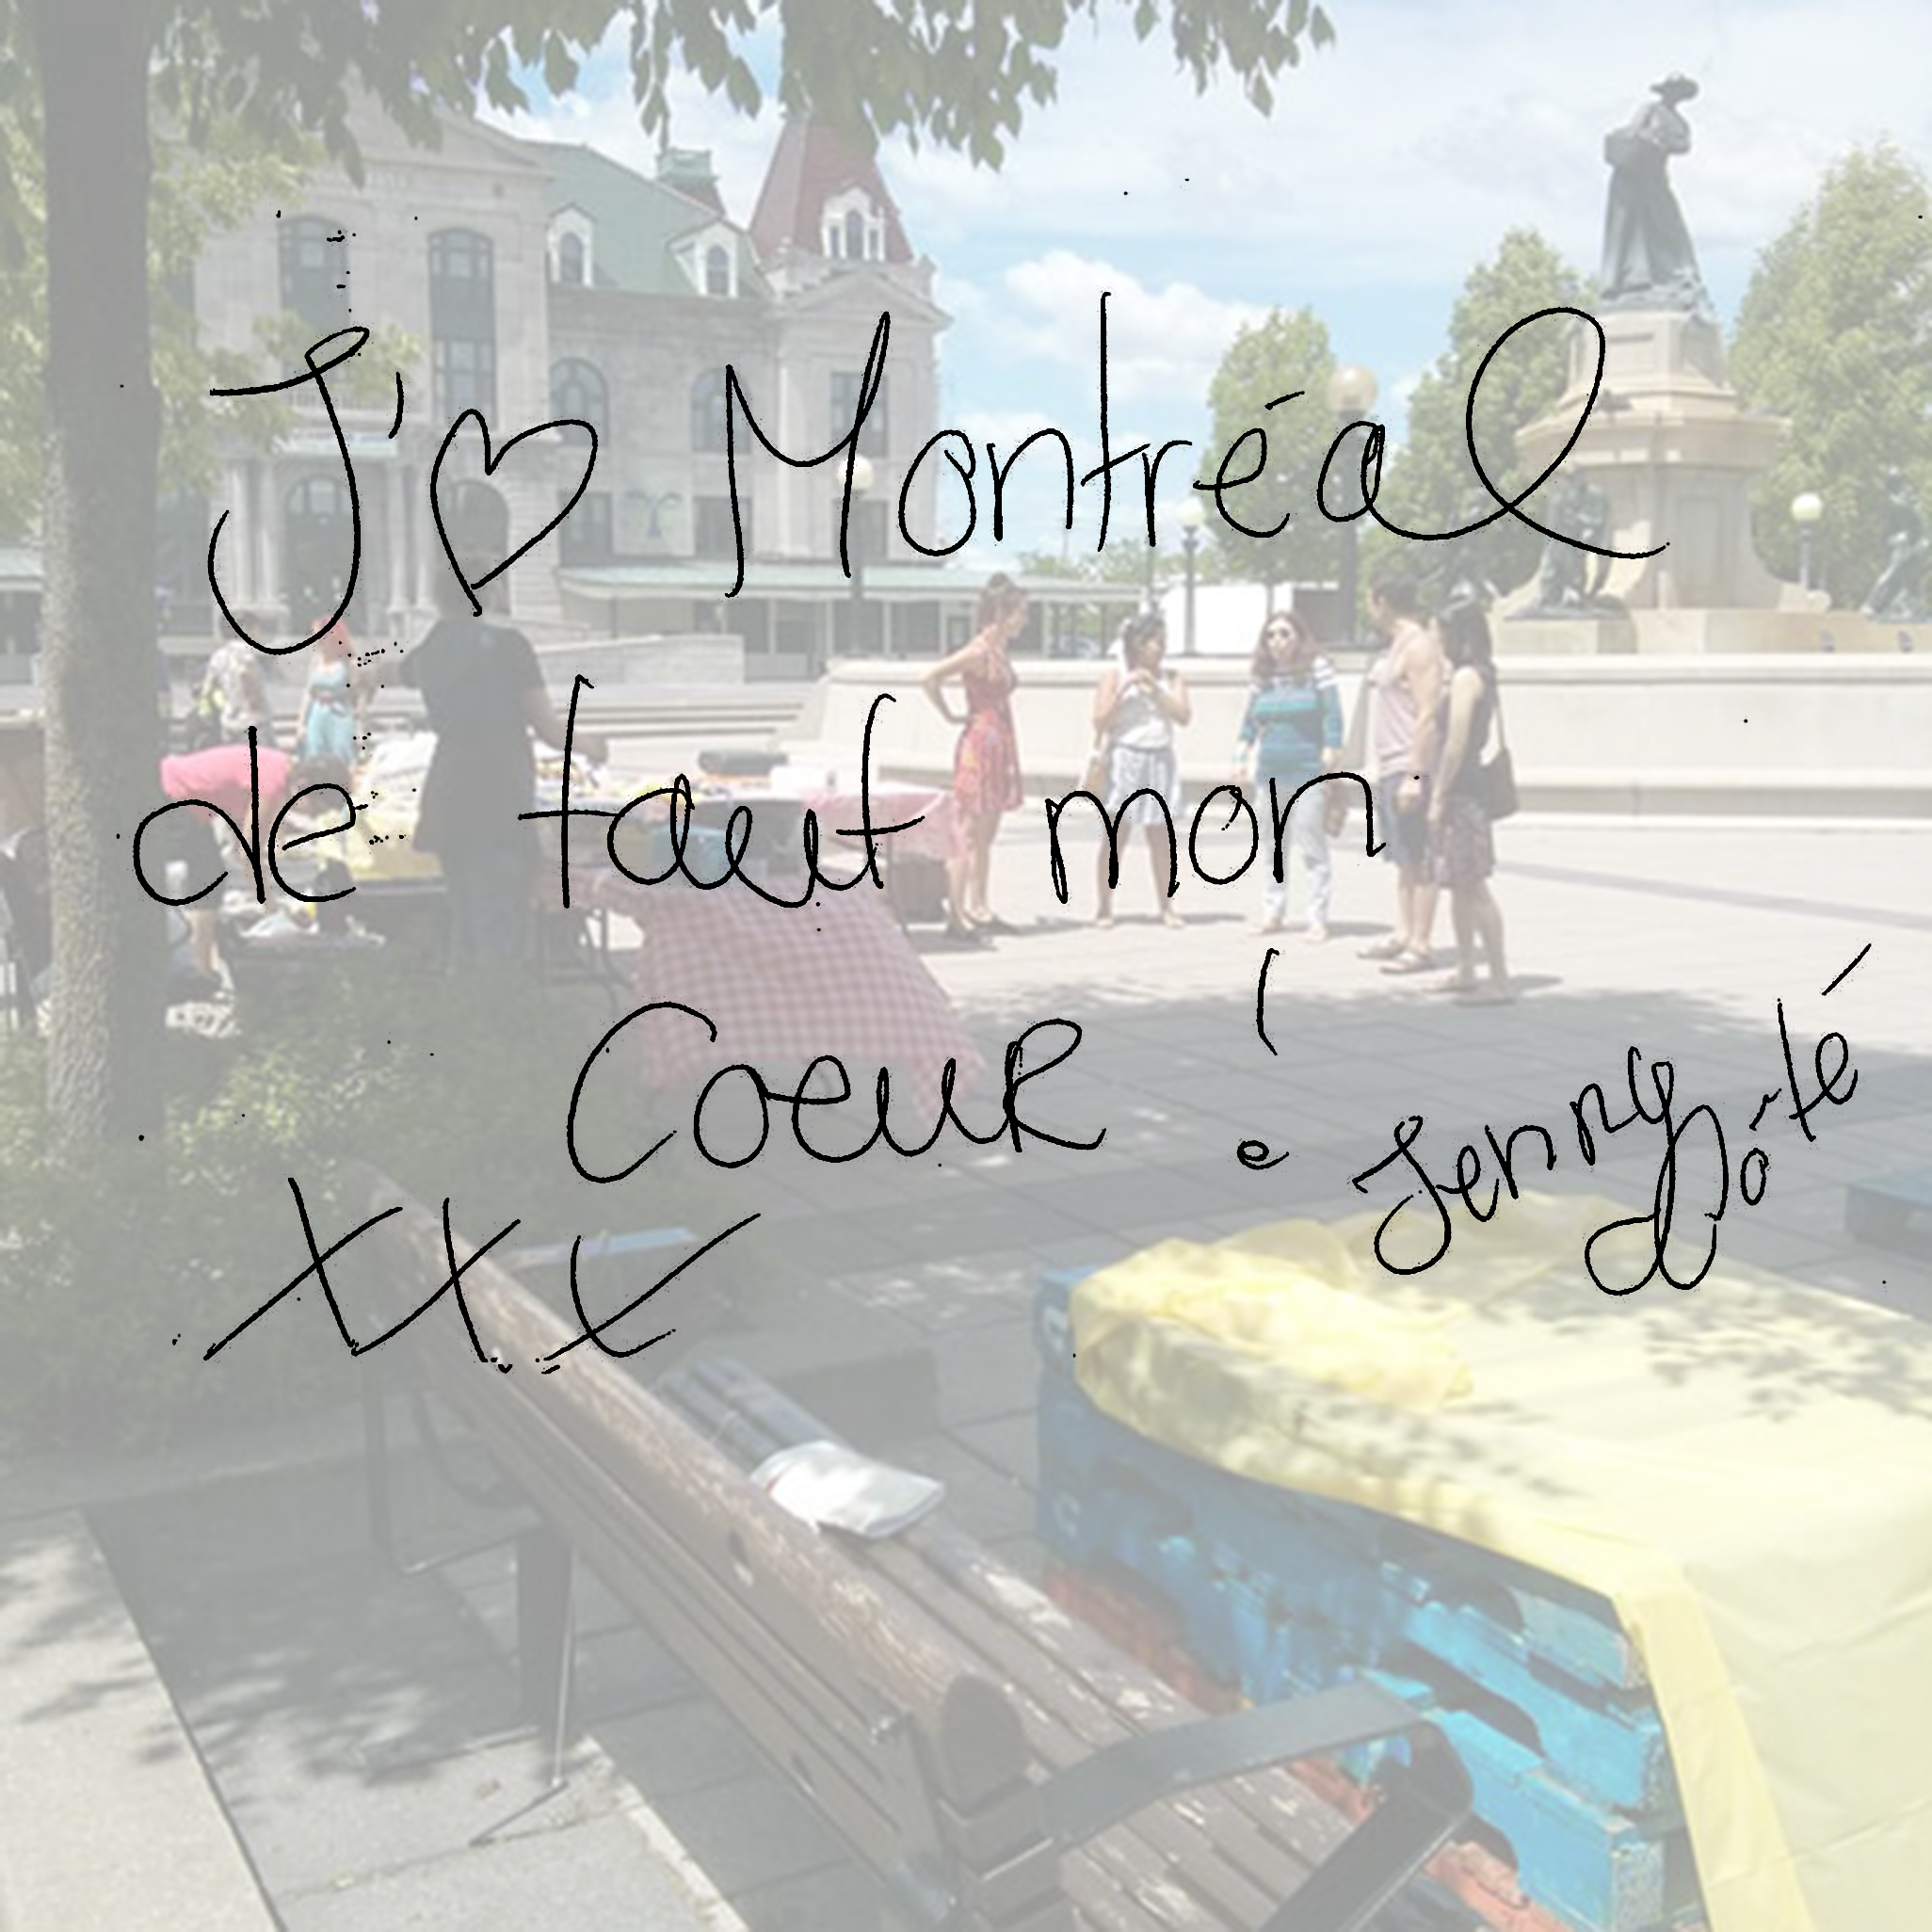 I love Montreal with all my heart! - Jenny